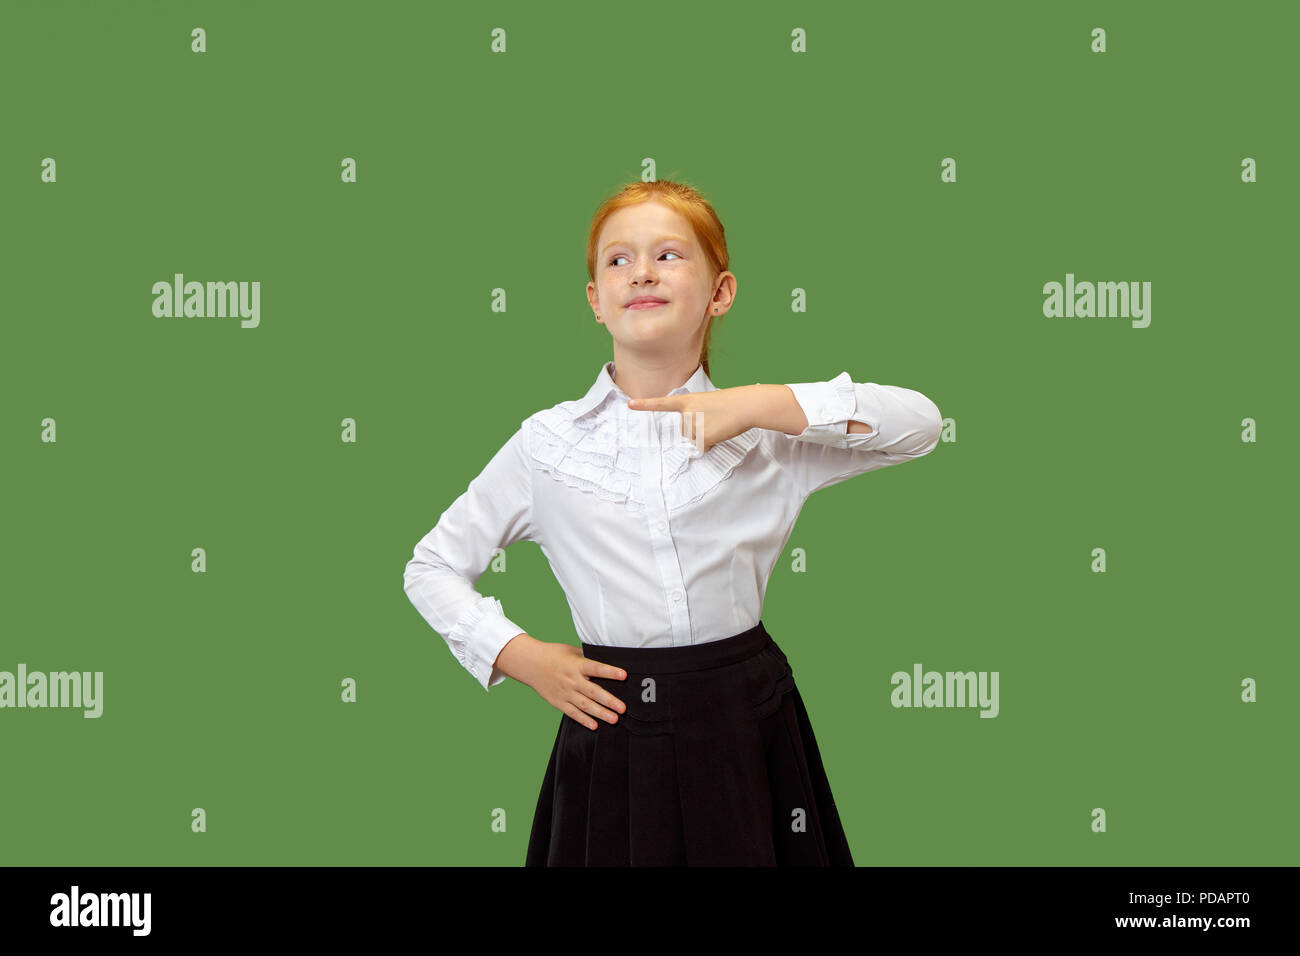 Happy teen girl standing, smiling and pointing isolated on trendy green studio background. Beautiful female half-length portrait. Human emotions, facial expression concept. - Stock Image